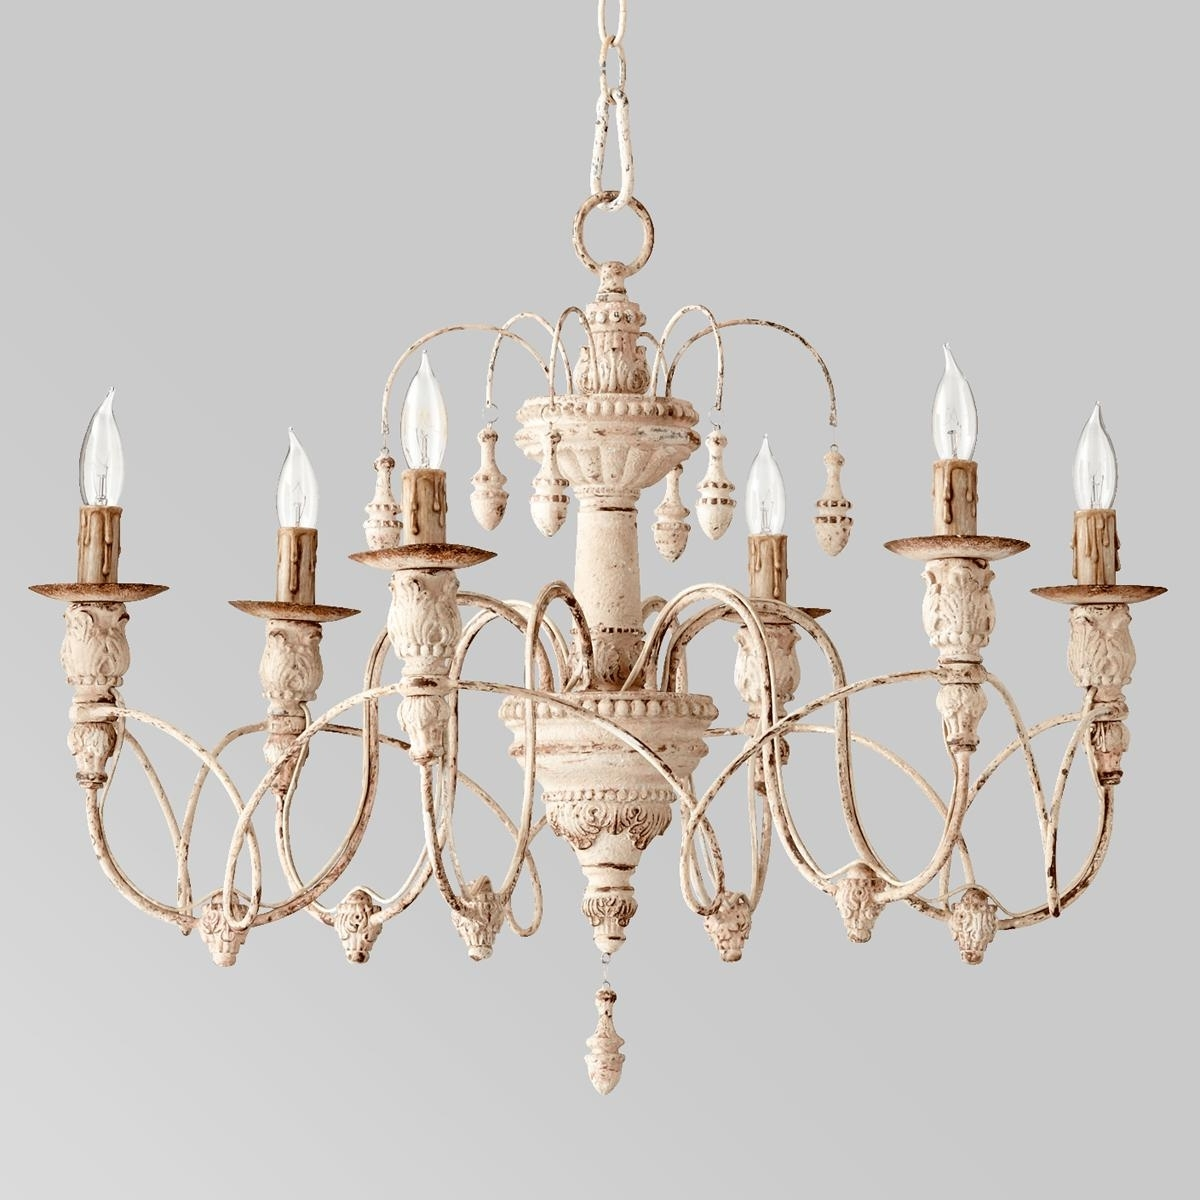 Cream Chandeliers With Well Known Gustavian Style White Chandelier (View 8 of 20)